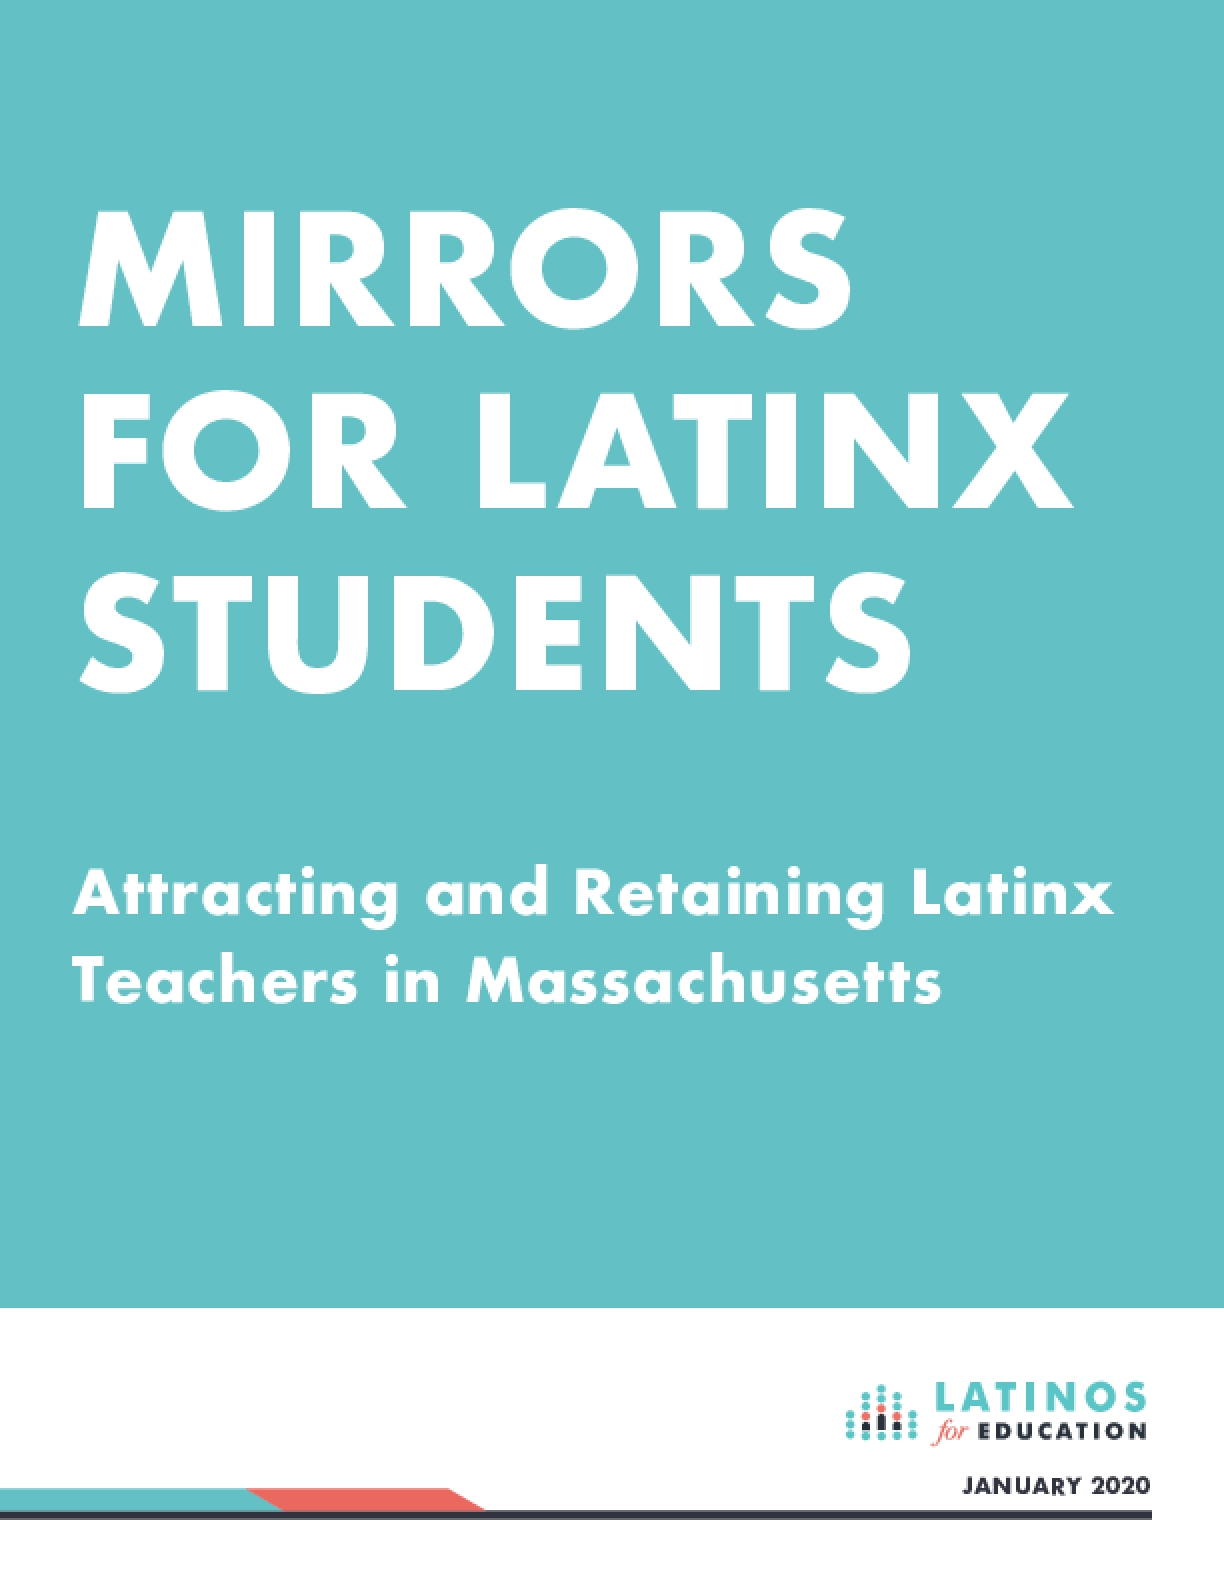 MIRRORS FOR LATINX STUDENTS: Attracting and Retaining Latinx Teachers in Massachusetts